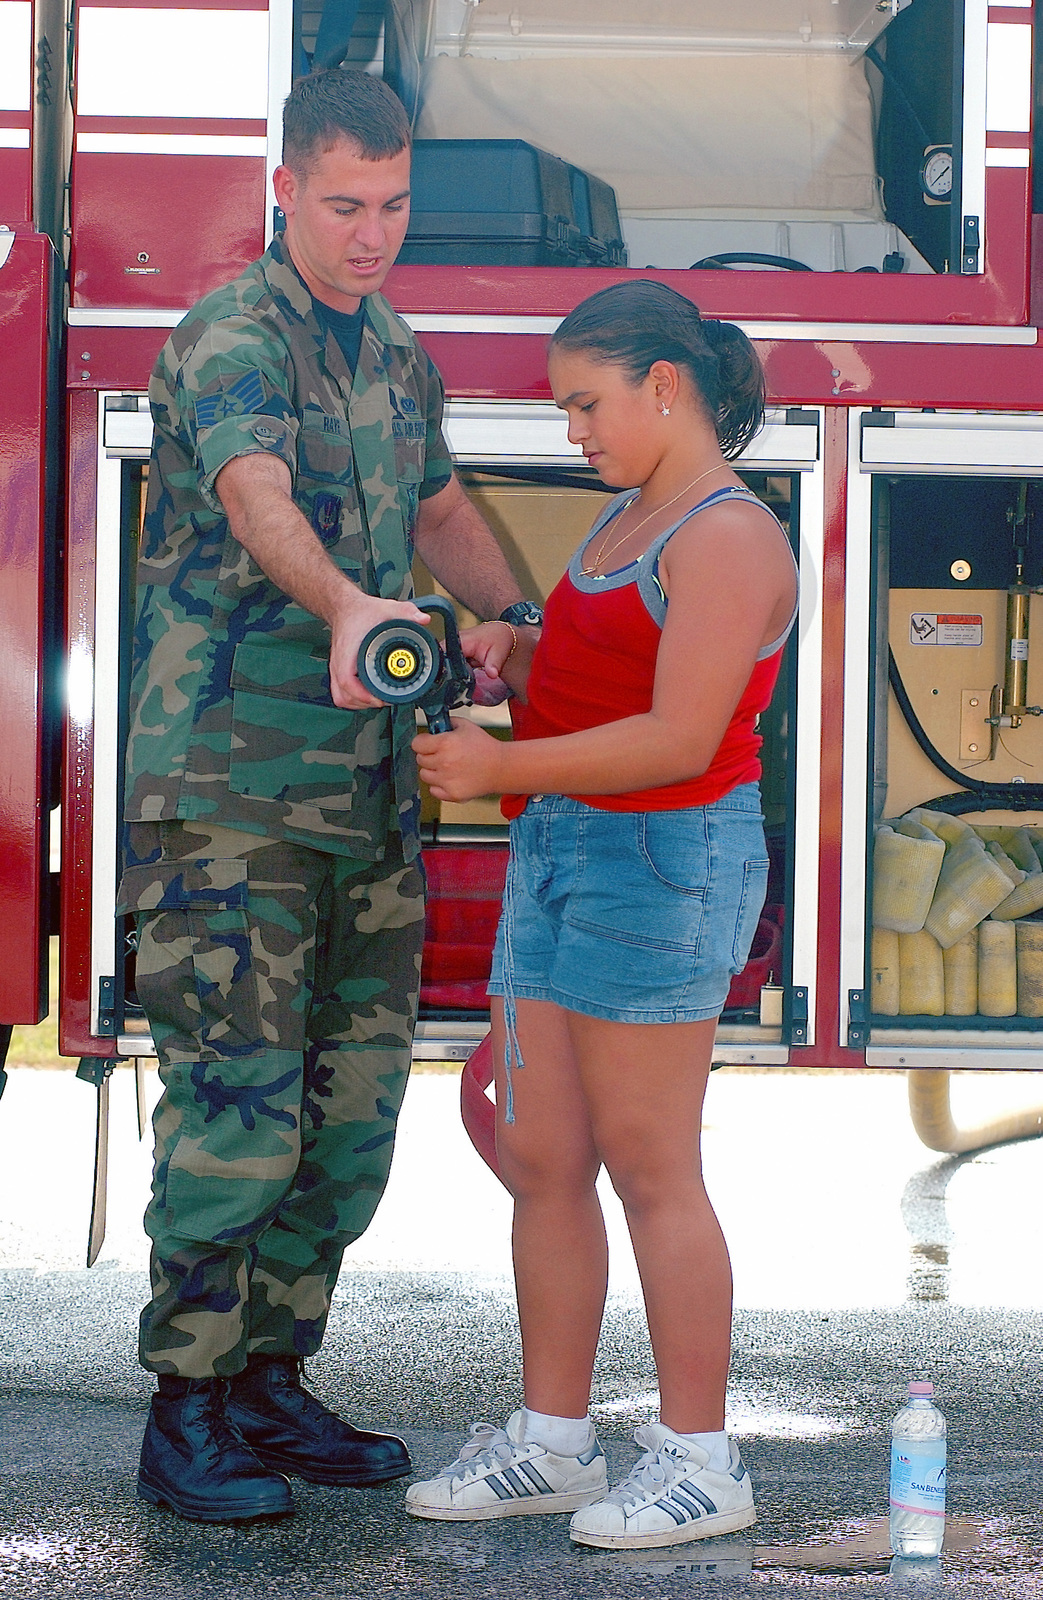 US Air Force (USAF) STAFF Sergeant (SSGT) Brayan Raye, a Fire Fighter, shows a child the hand lines off of the crash 8 T3000 fire truck during a tour of Aviano Air Base (AB) on Labor Day weekend